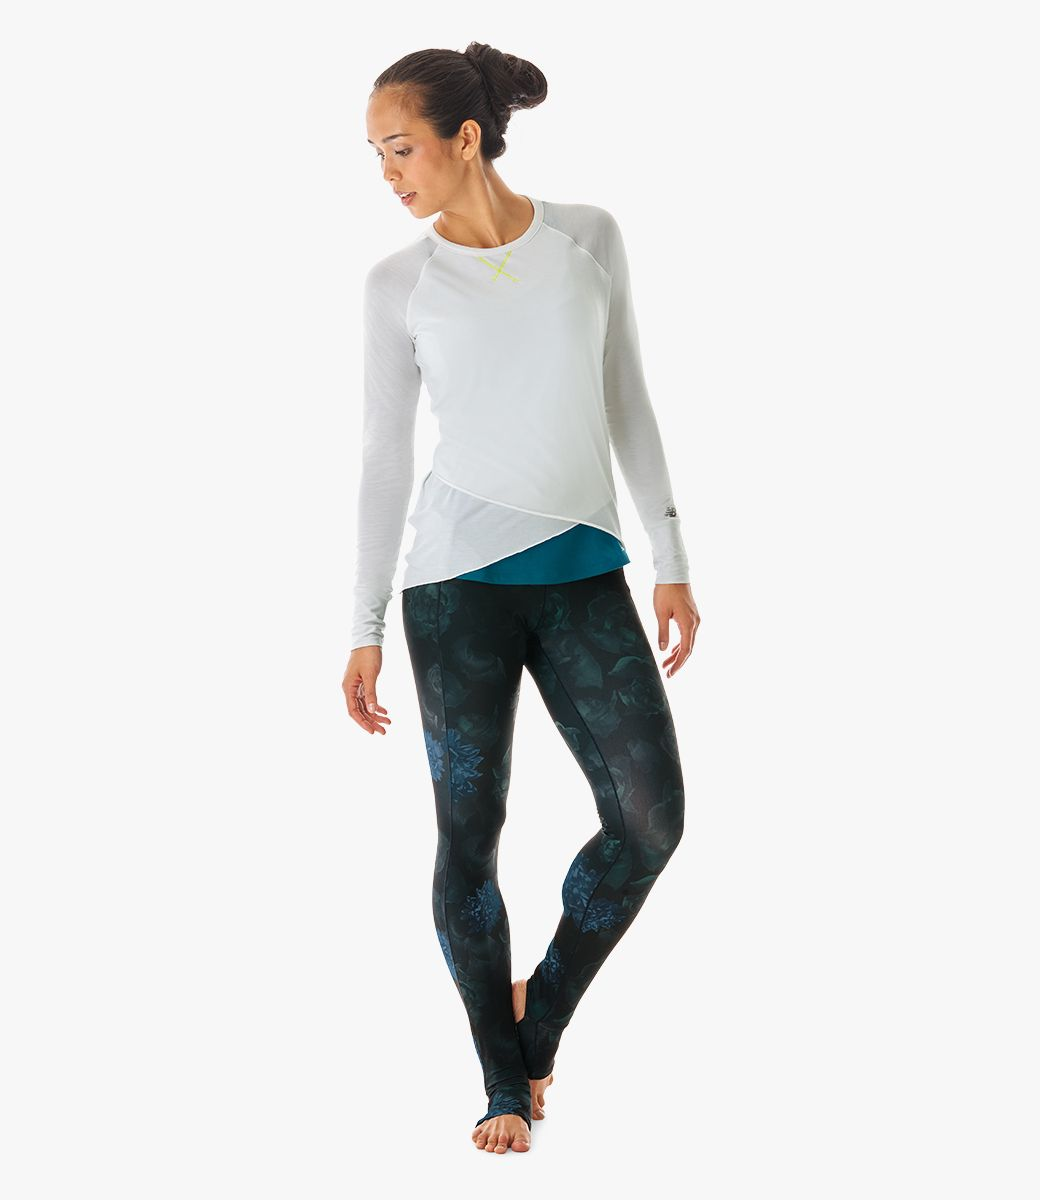 New Balance Womens September Studio Look,